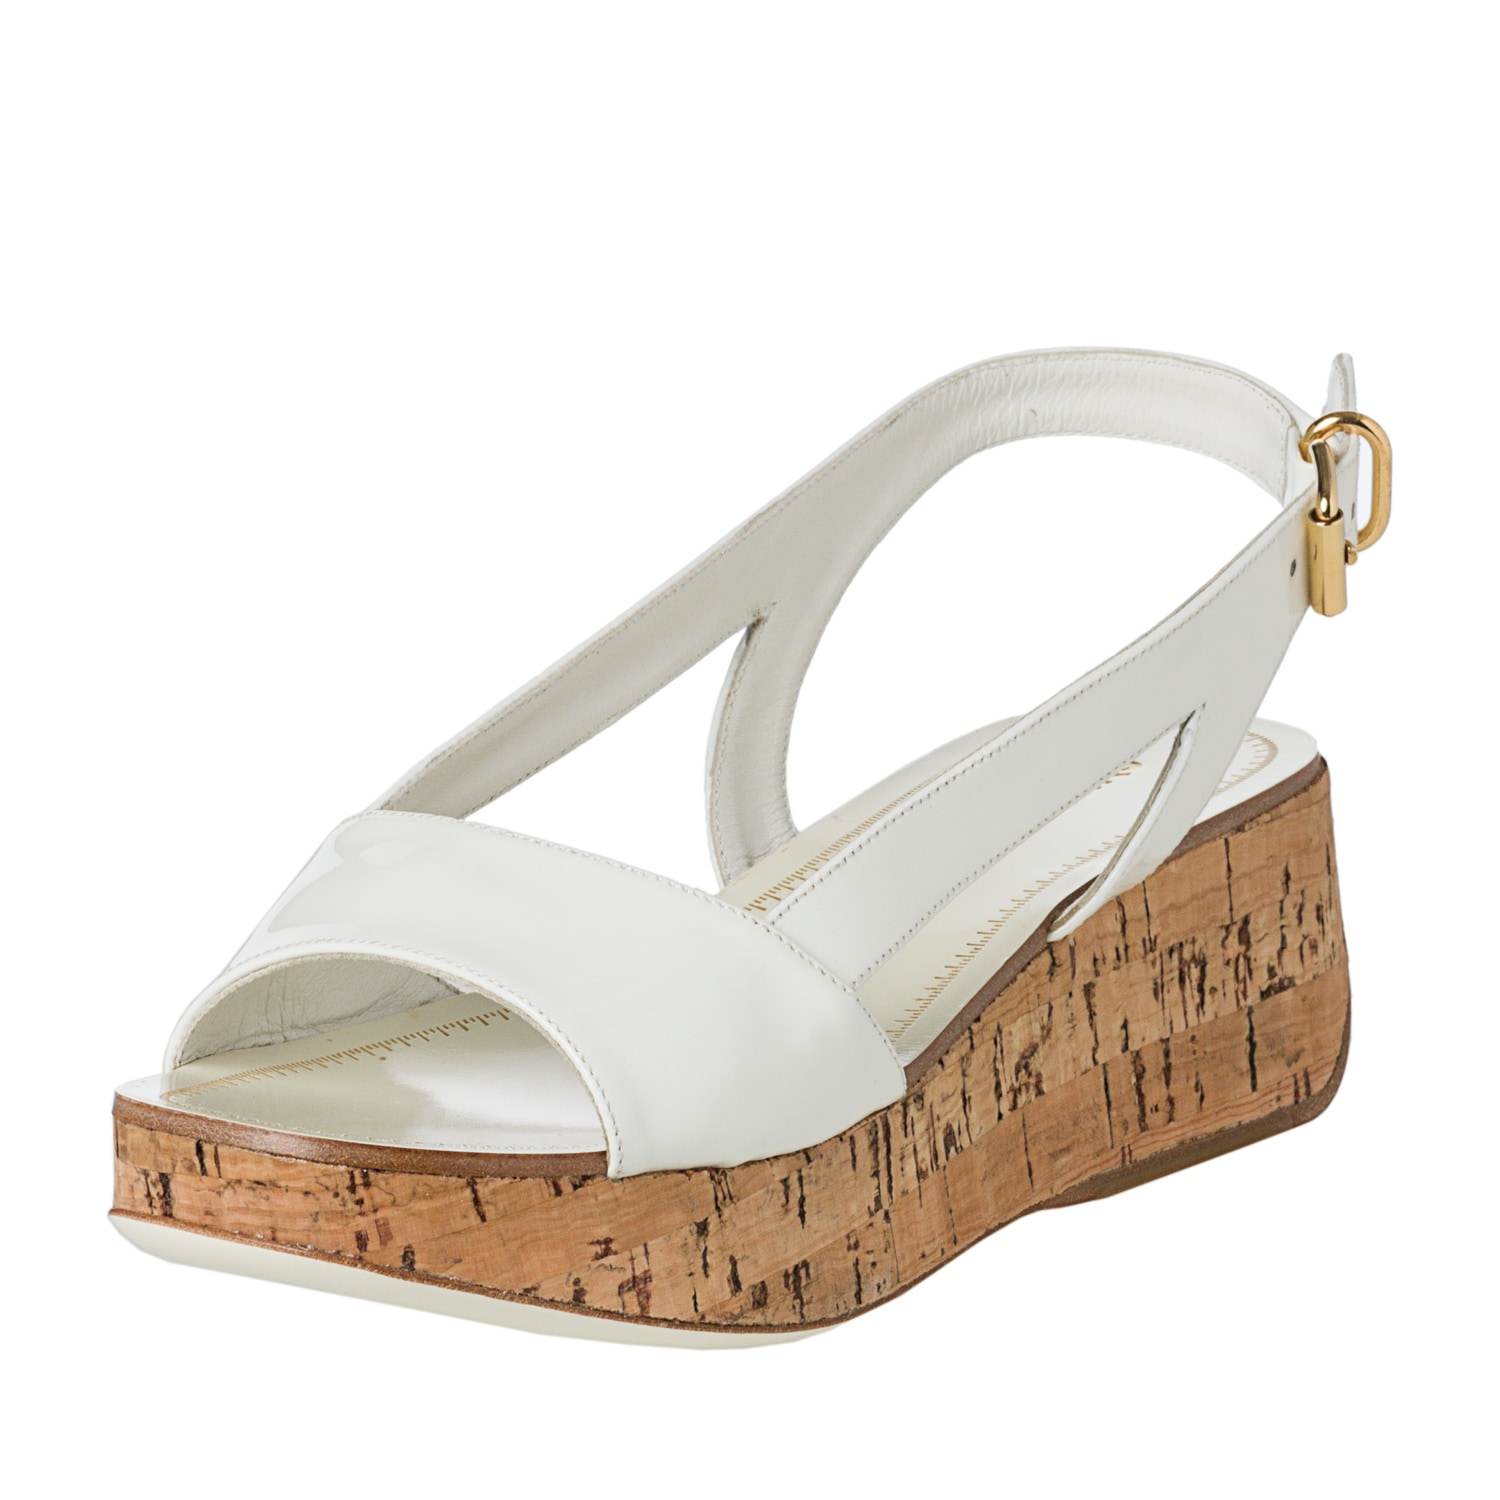 fe3df69e84d Shop Miu Miu Women s White Patent Leather Cork Wedge Sandals - Free  Shipping Today - Overstock - 7920379